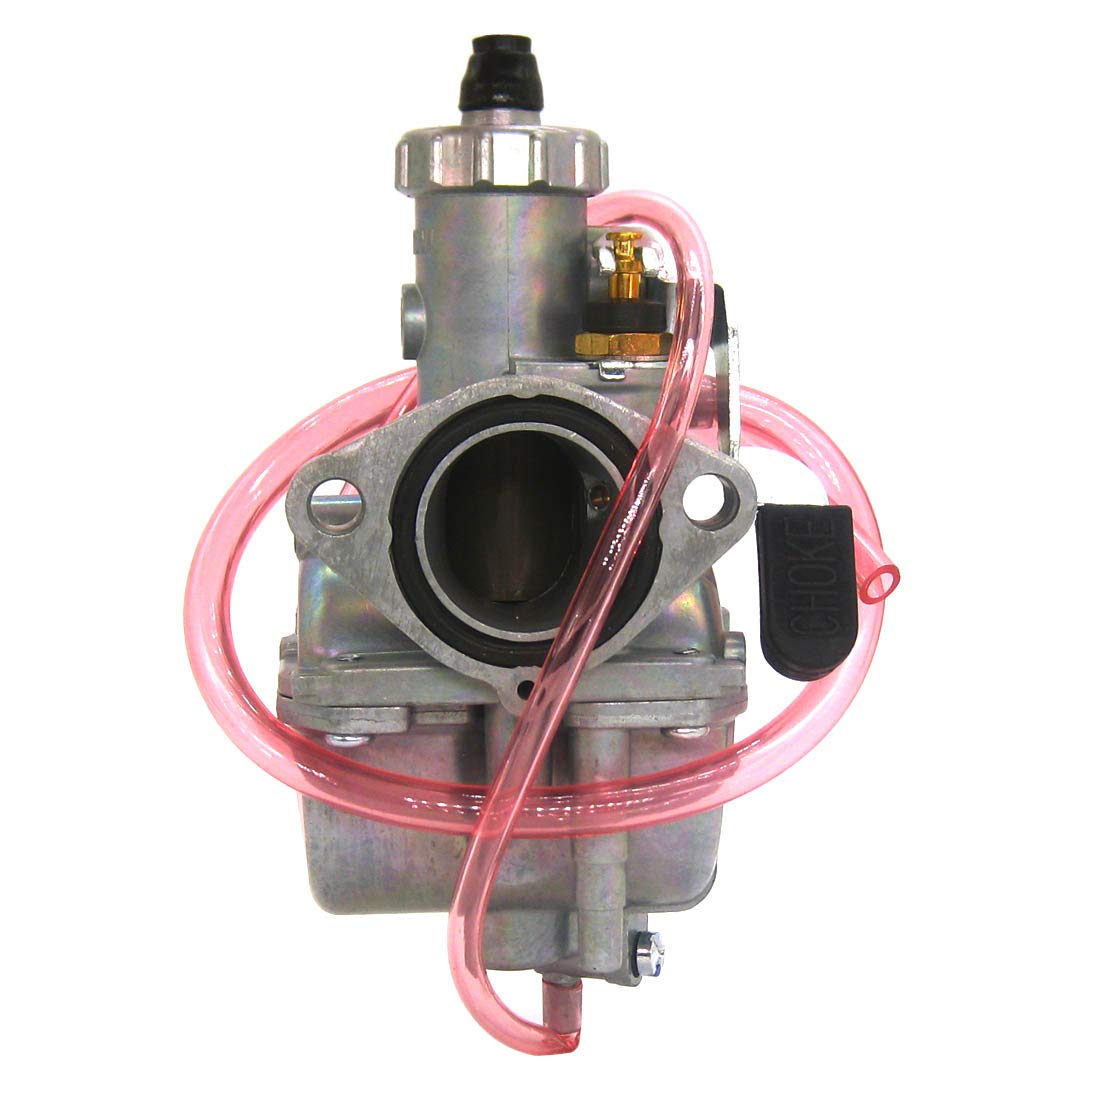 Atoparts VM22 Carb 26mm Carburetor for Mikuni Intake Pipe Pit Dirt Bike 110cc 125cc 140cc Lifan YX